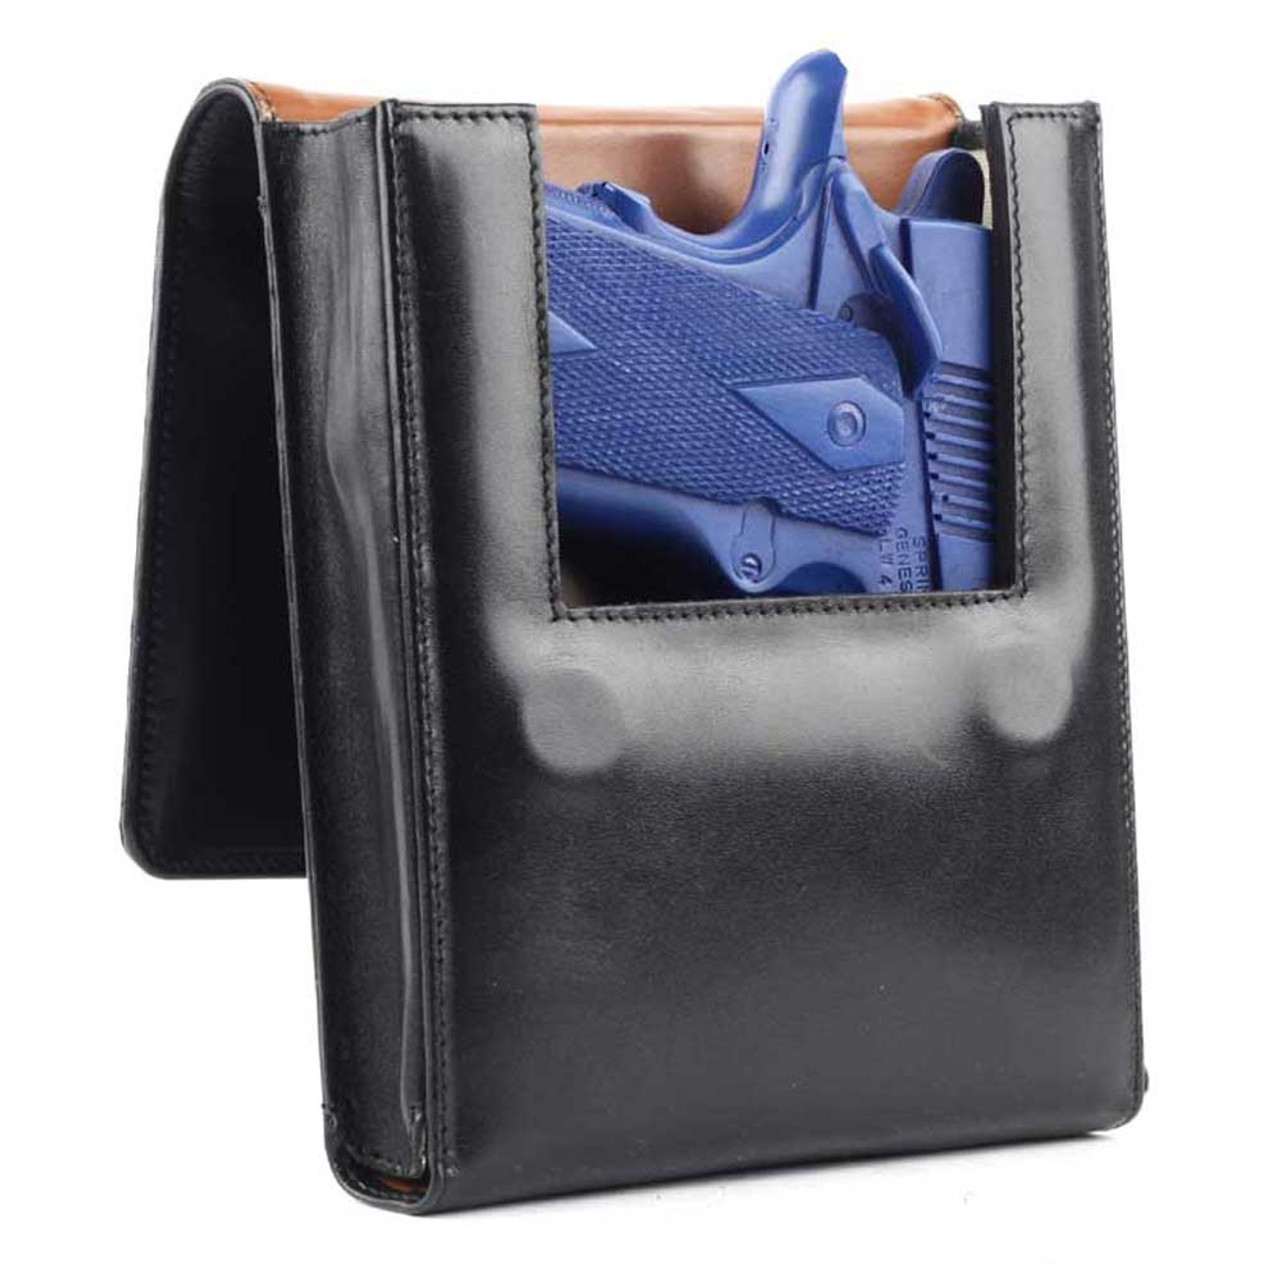 Springfield Micro Compact Concealed Carry Holster (Belt Loop)